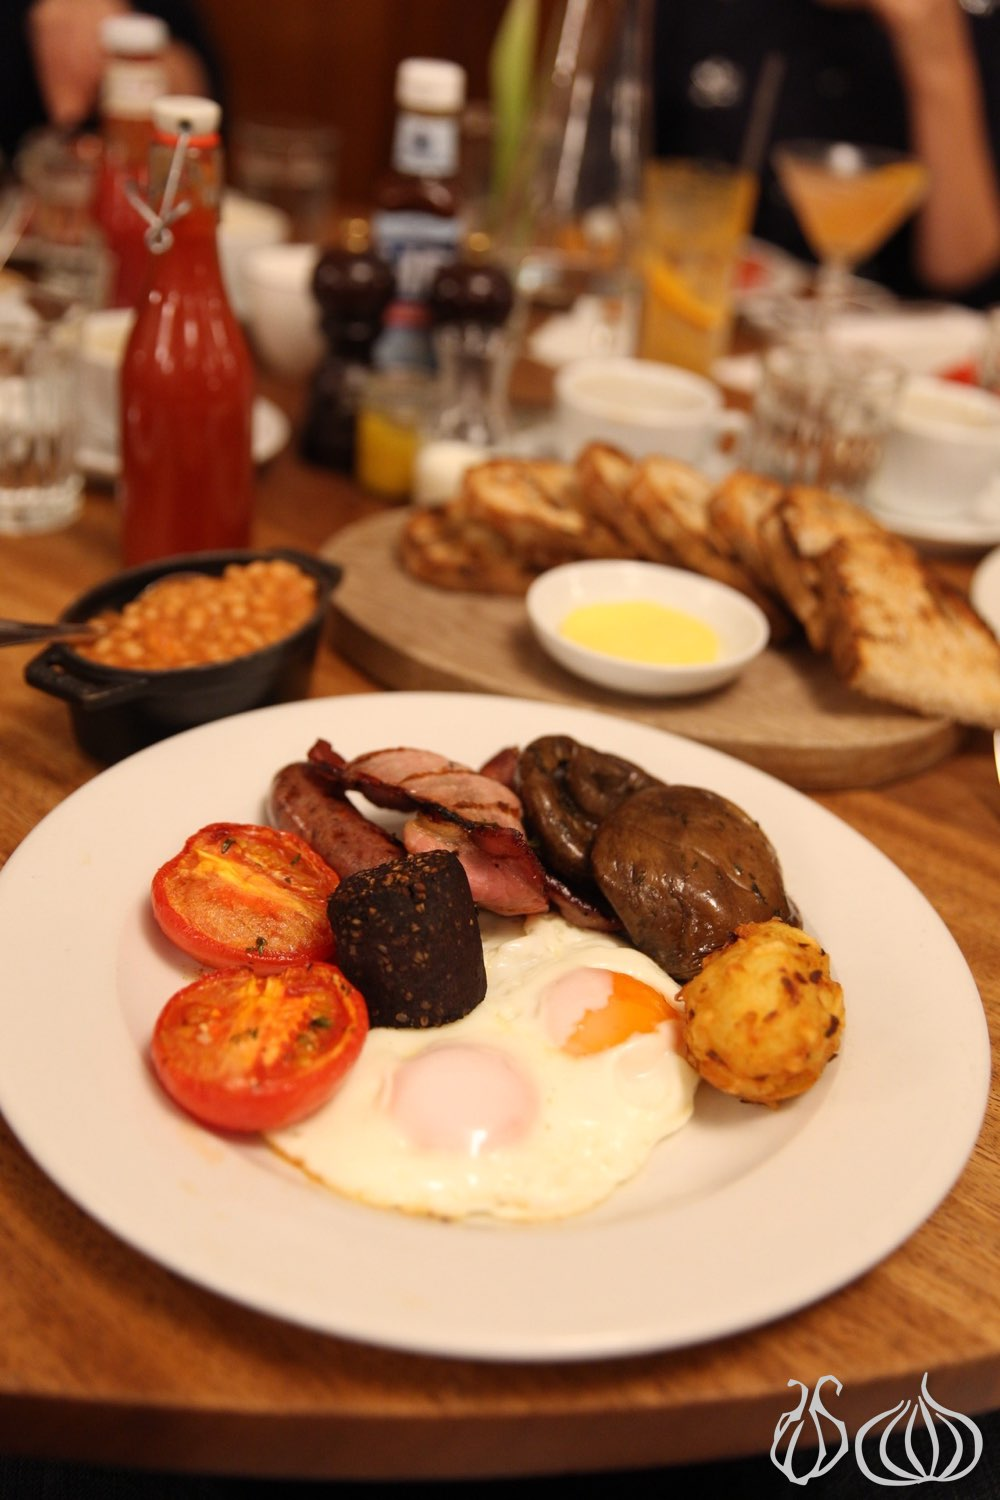 hawksmoor-english-breakfast-london192015-06-19-05-53-17